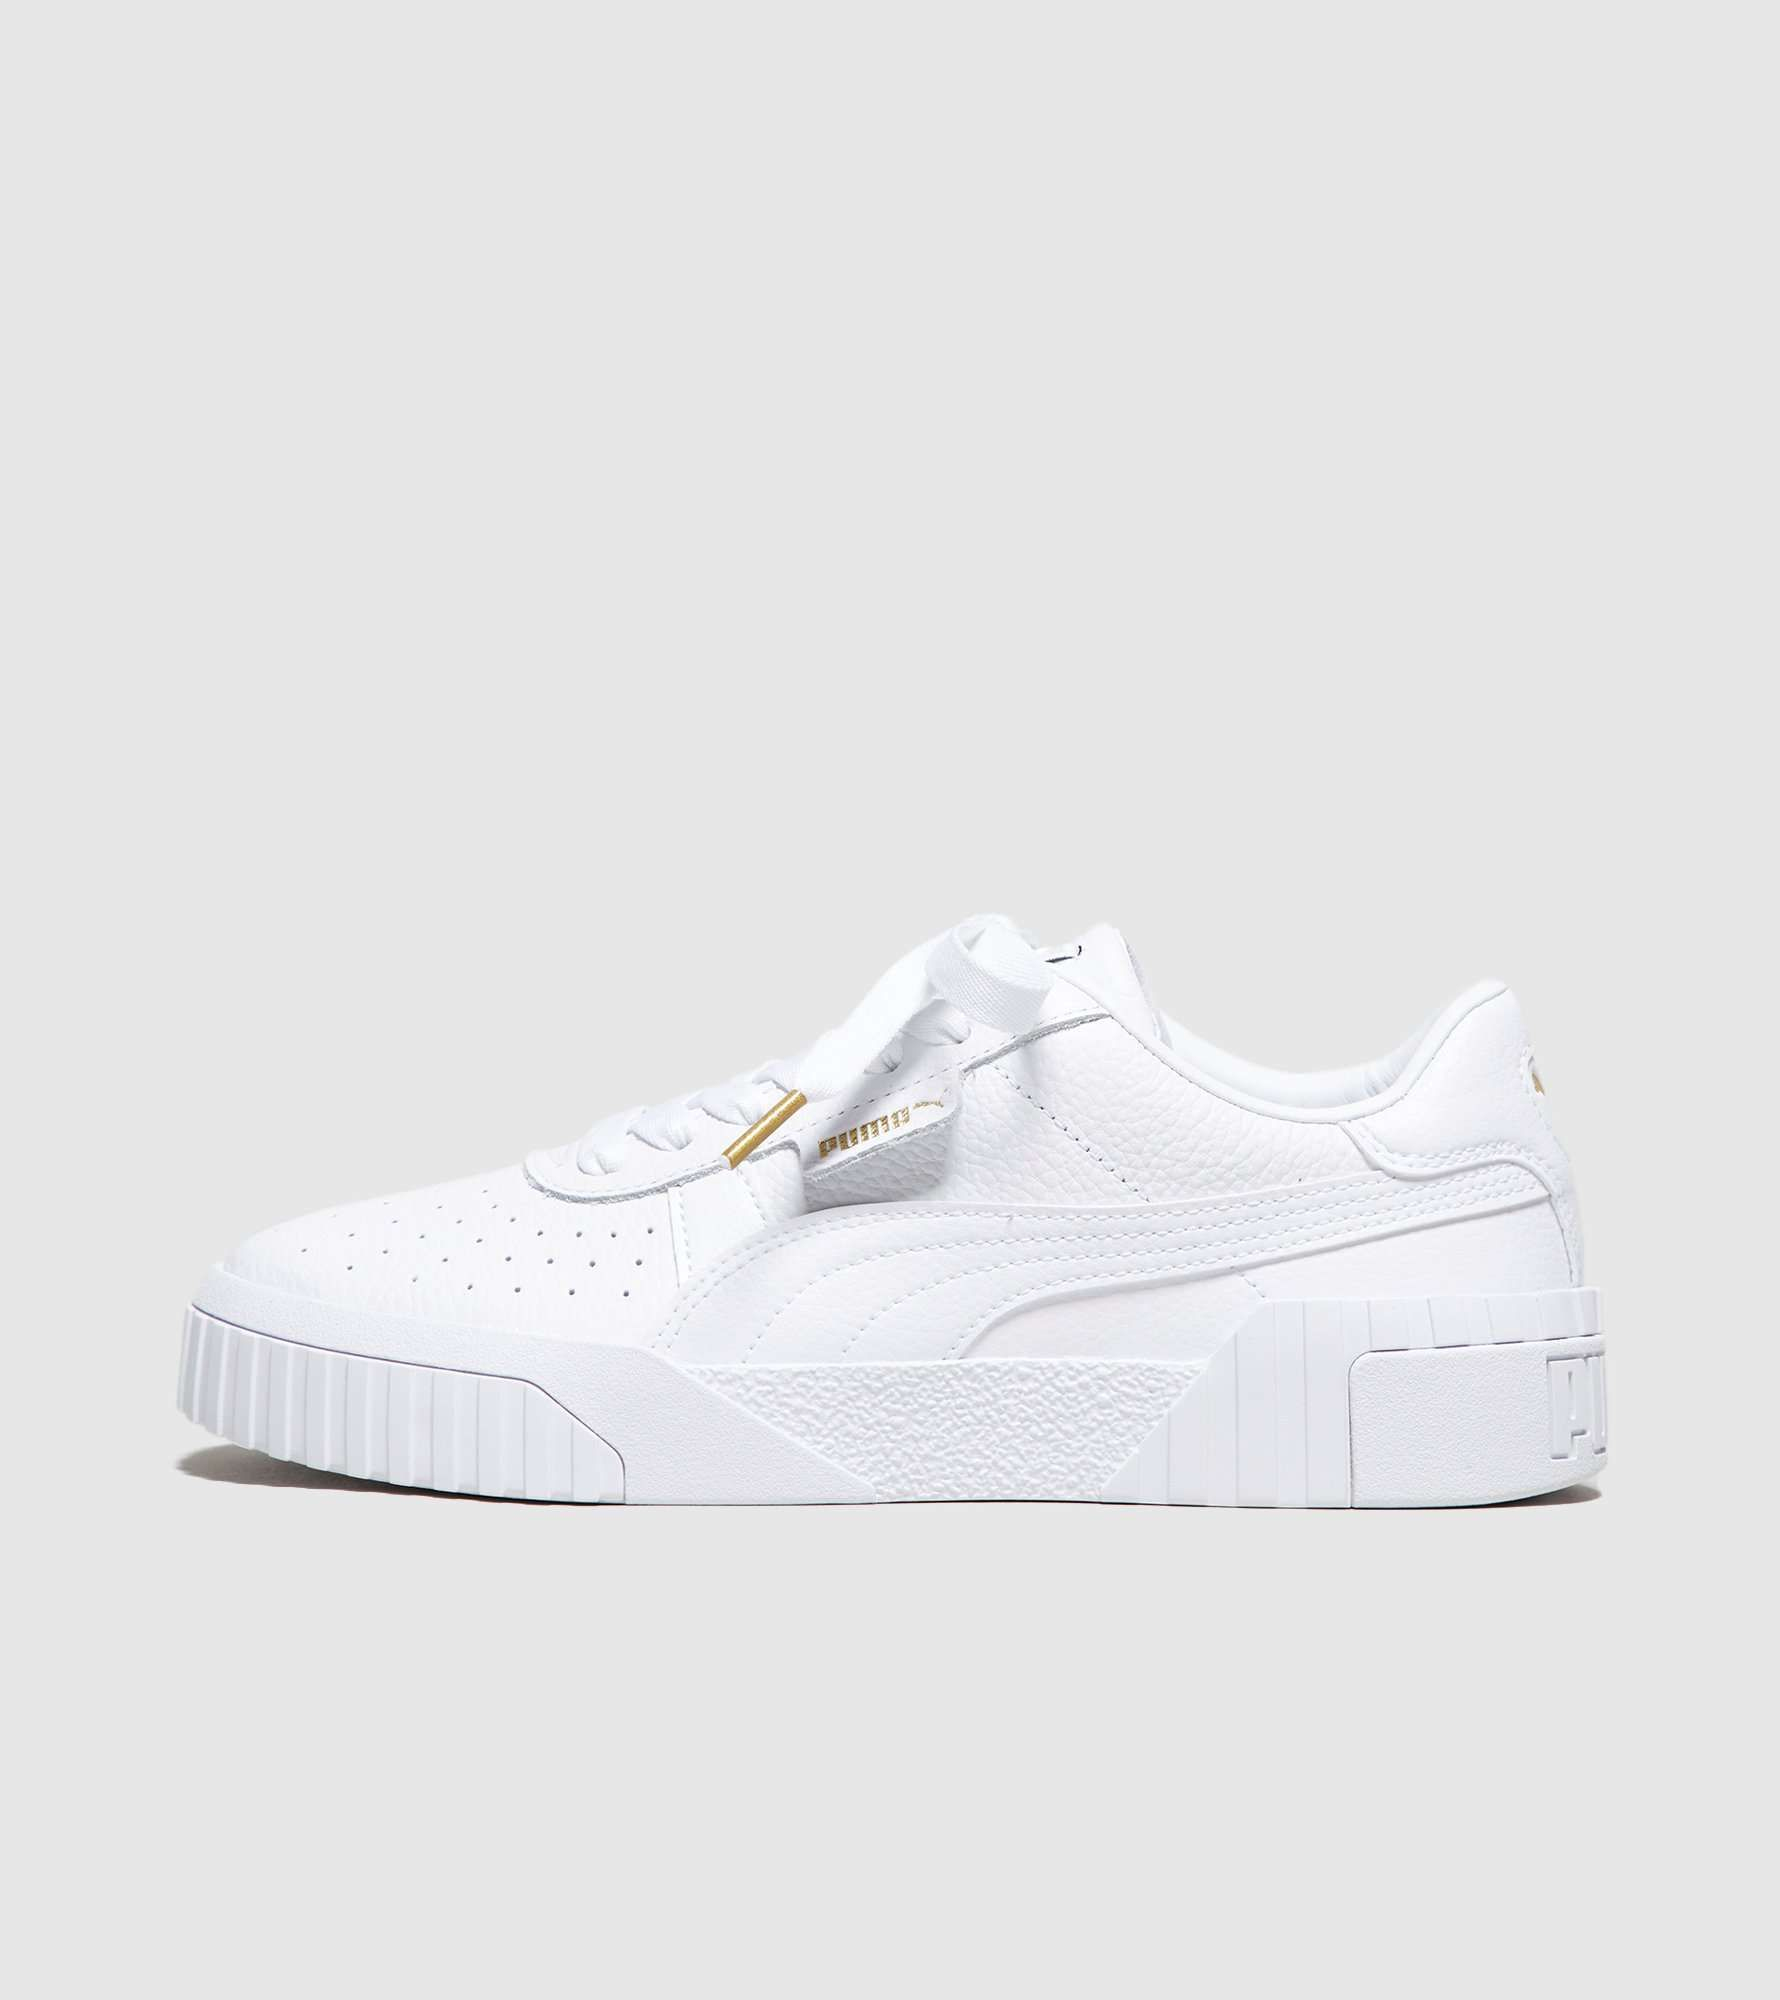 cfb33aa362a PUMA Cali Women's - find out more on our site. Find the freshest in  trainers and clothing online now.